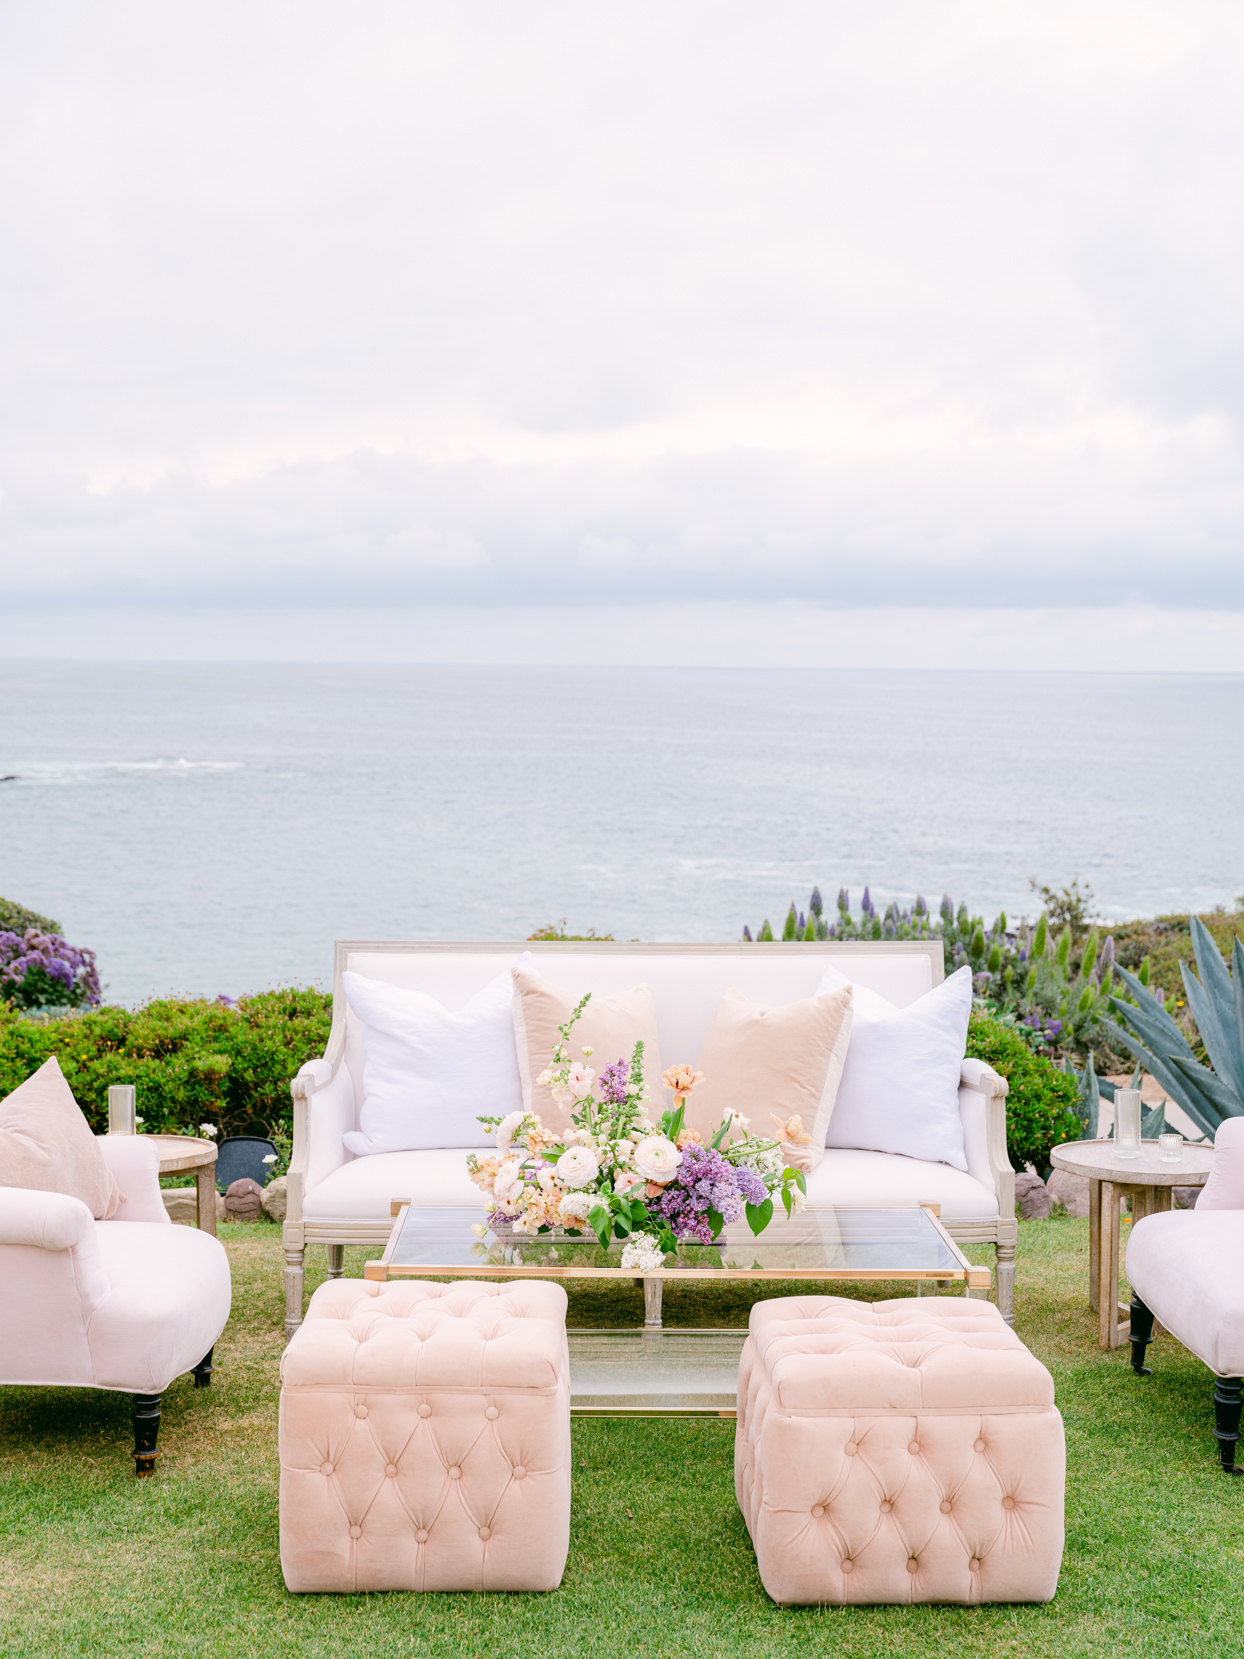 beige and white outdoor wedding lounge area